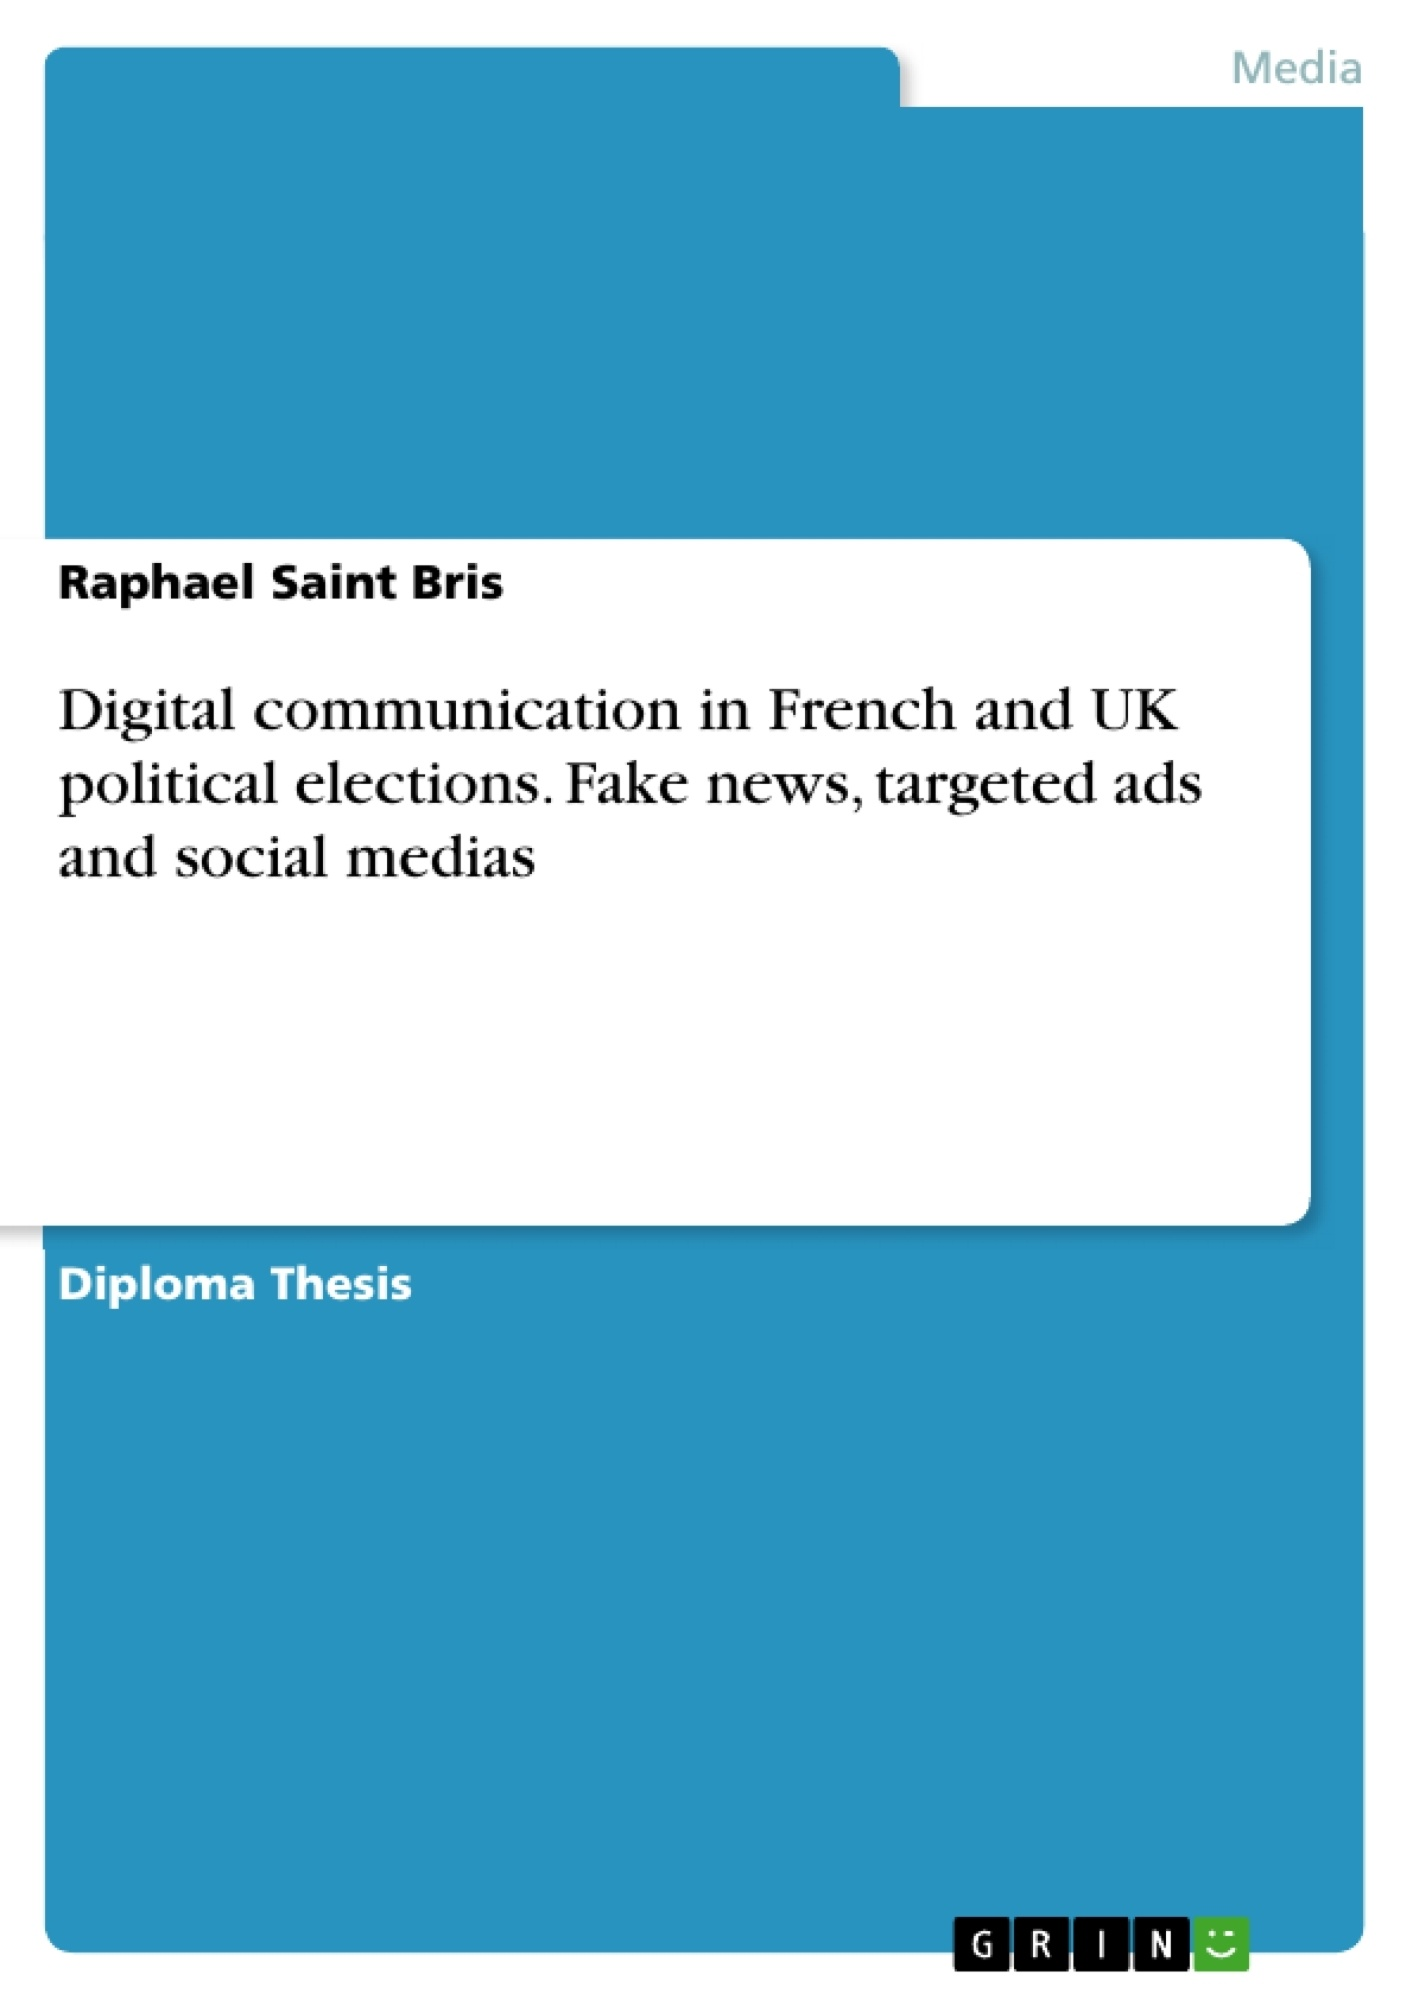 Title: Digital communication in French and UK political elections. Fake news, targeted ads and social medias